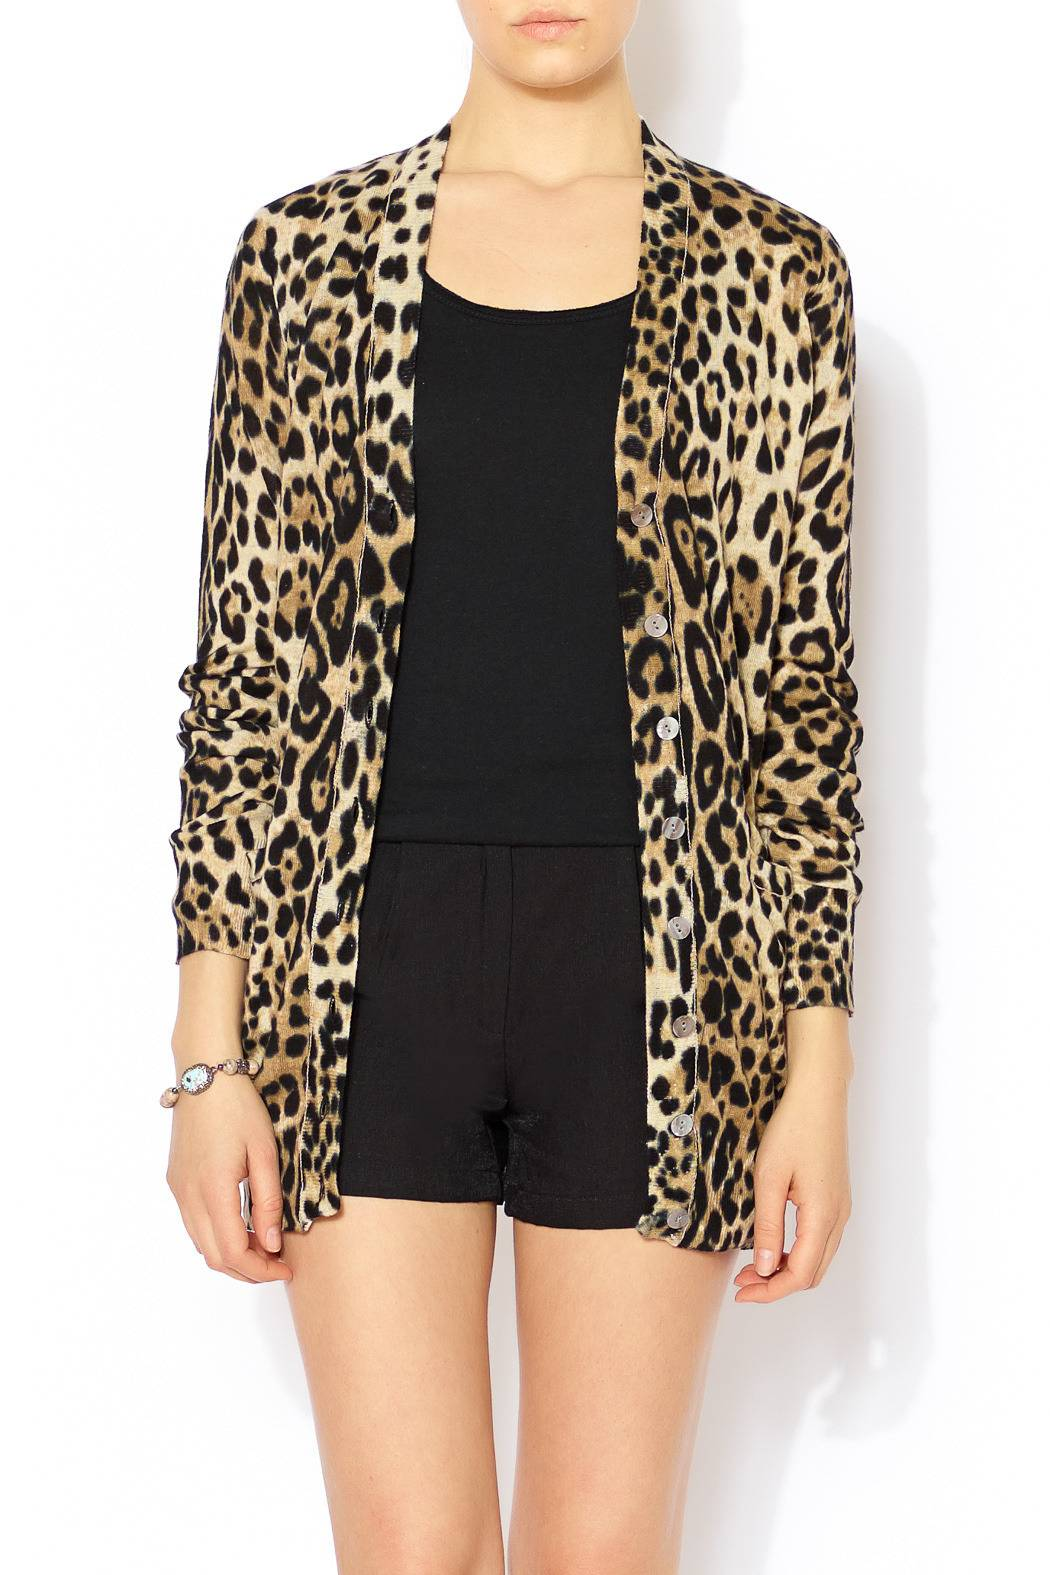 How to Wear Your Leopard Print Cardigan